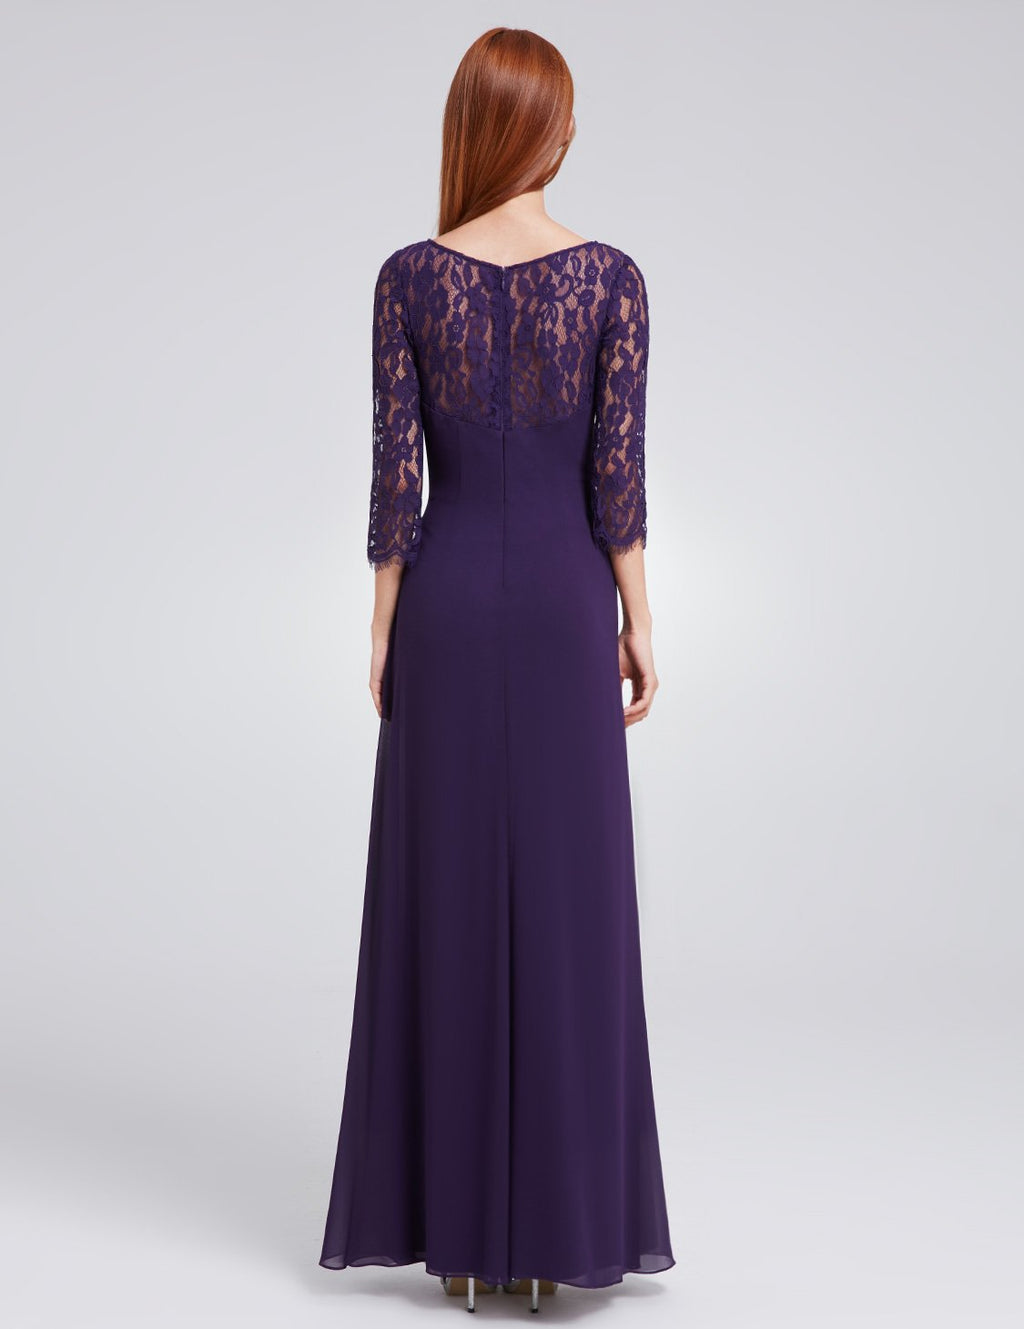 Half Sleeves Gorgeous Long Maxi Gown Purple